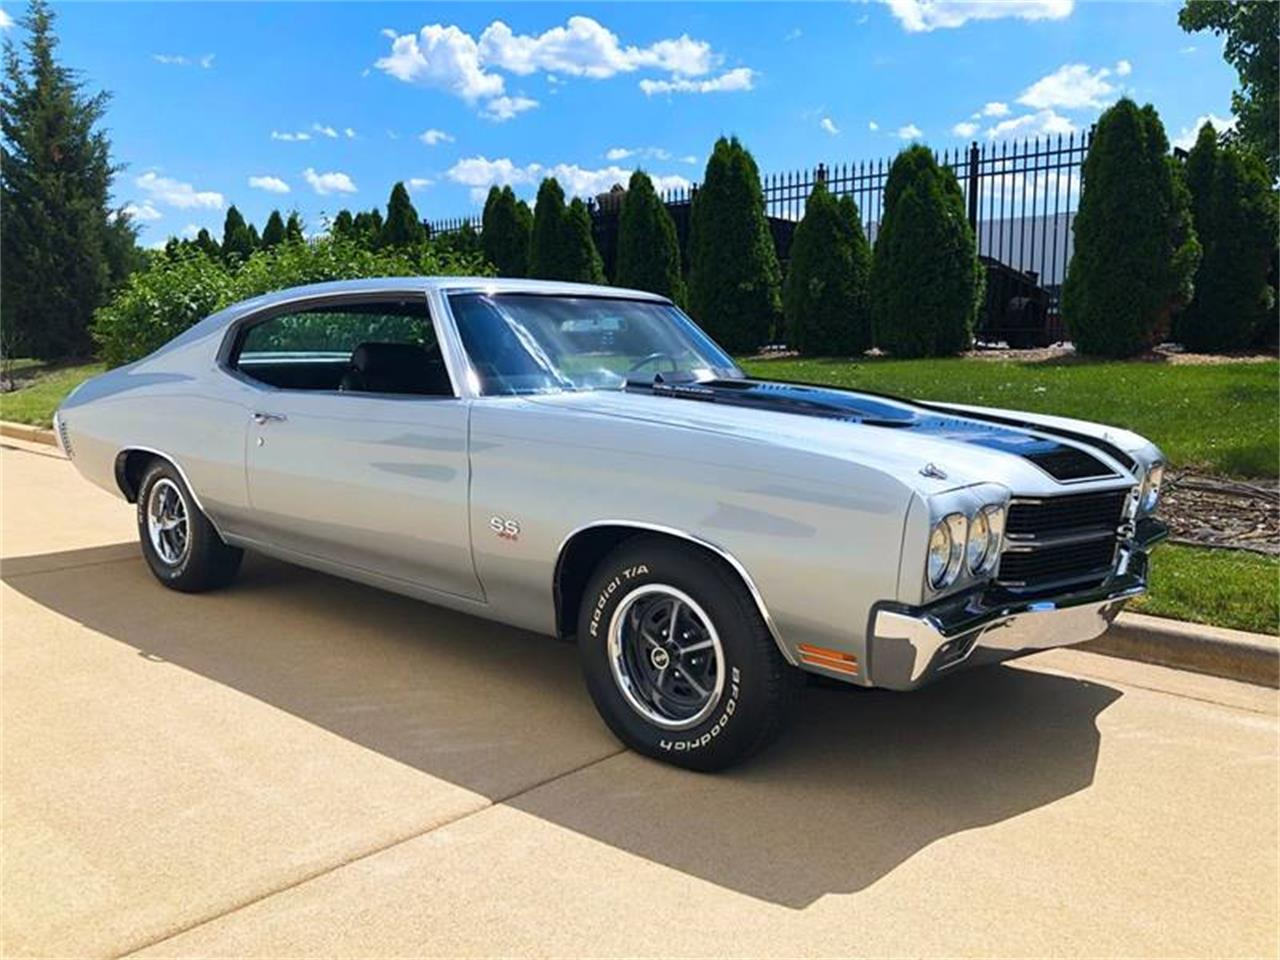 Large Picture of 1970 Chevrolet Chevelle - $144,990.00 Offered by Corvette Mike Midwest - QQIY